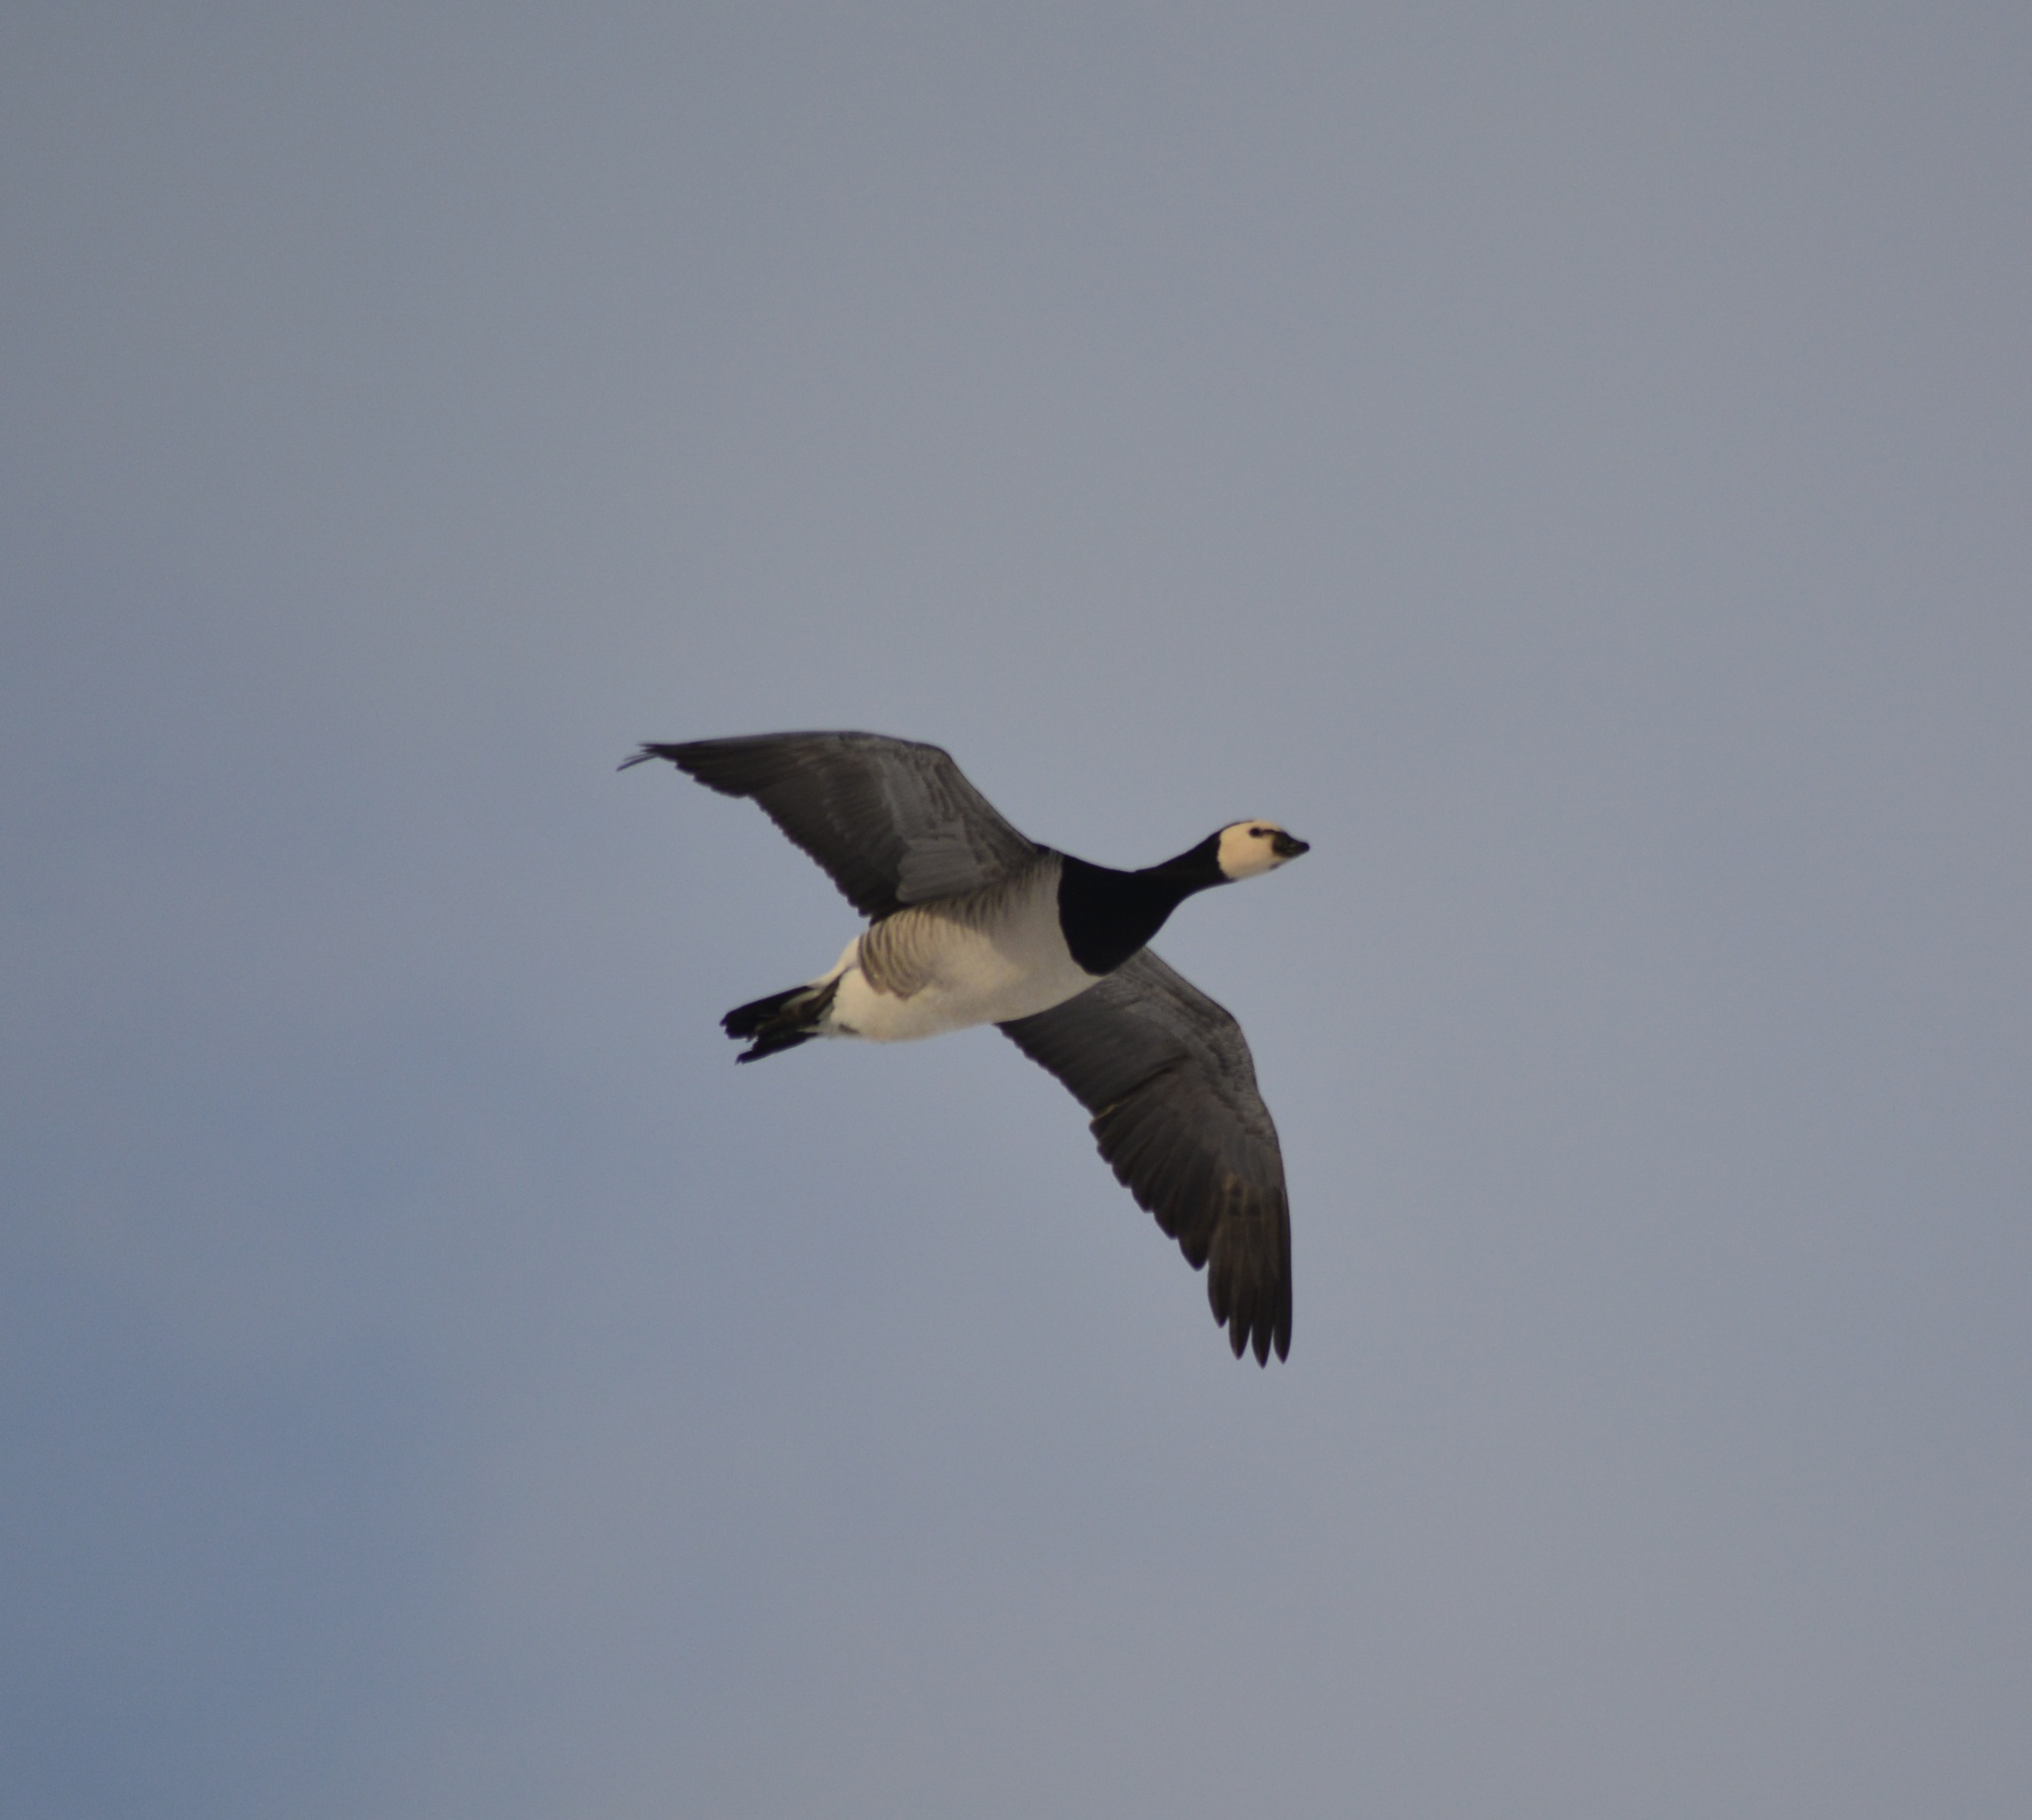 Canadian Goose by Jo Ison